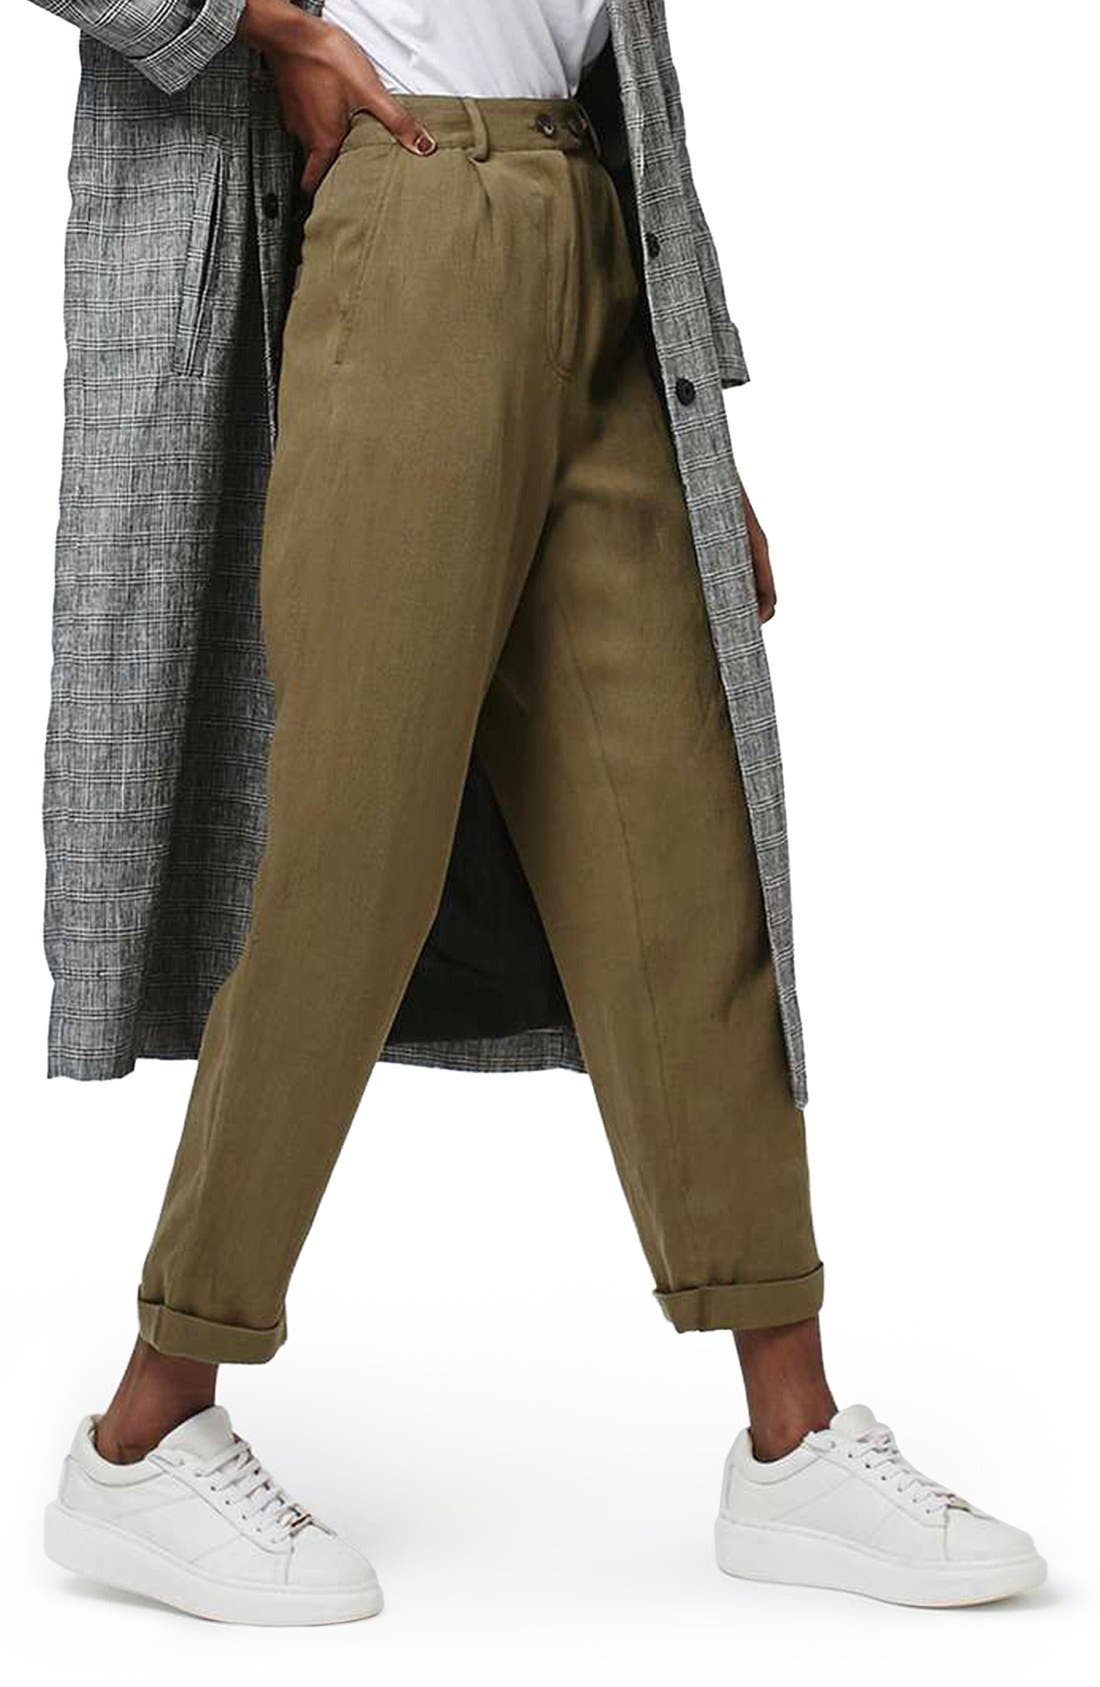 Alternate Image 1 Selected - Topshop 'Mensy' Corduroy Peg Trousers